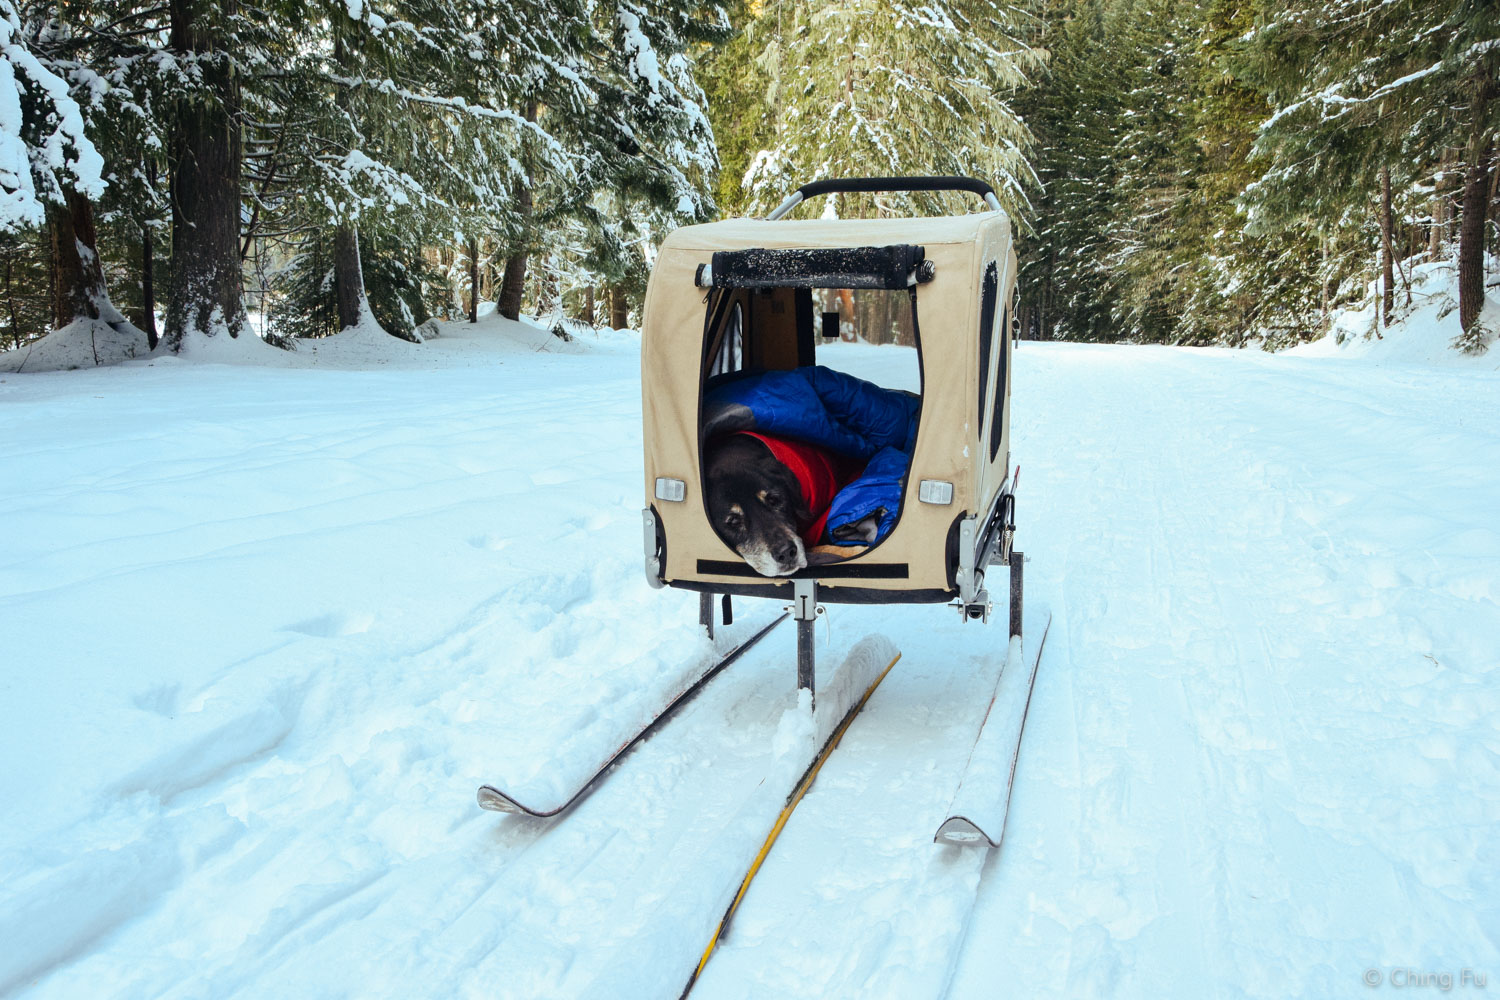 This photo is from January 2017. Jerud and I worked at  Crystal Mountain Ski Resort , WA that winter. We came across discarded skis and turned Tybee's dog trailer into a doggy sled - just like we had talked about above in 2013!!